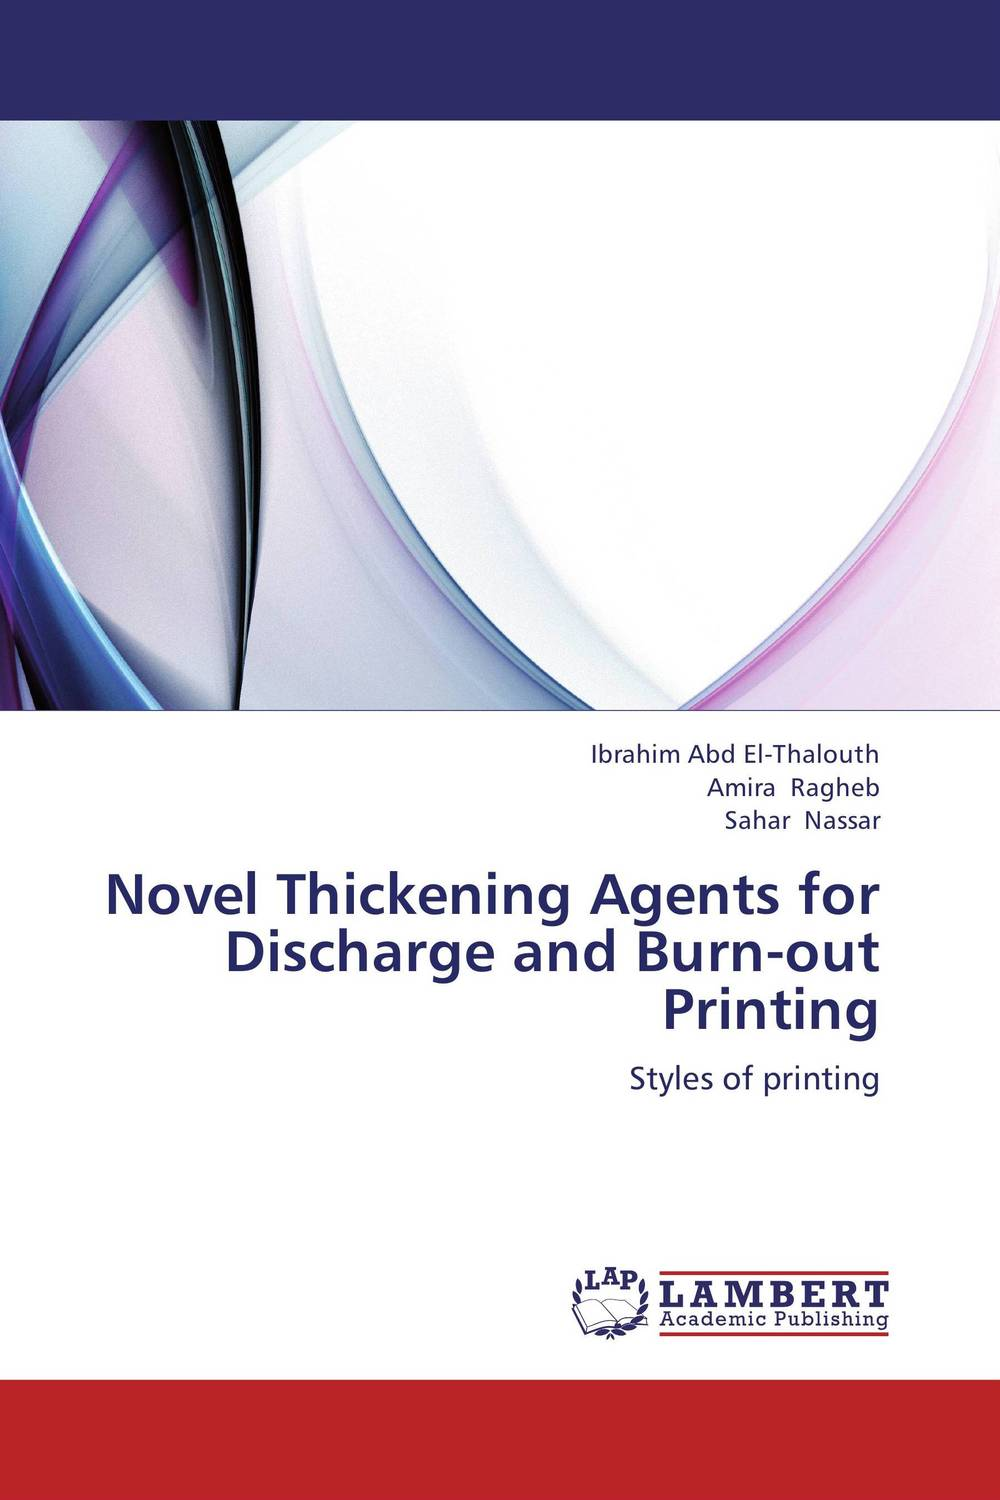 Novel Thickening Agents for Discharge and Burn-out Printing